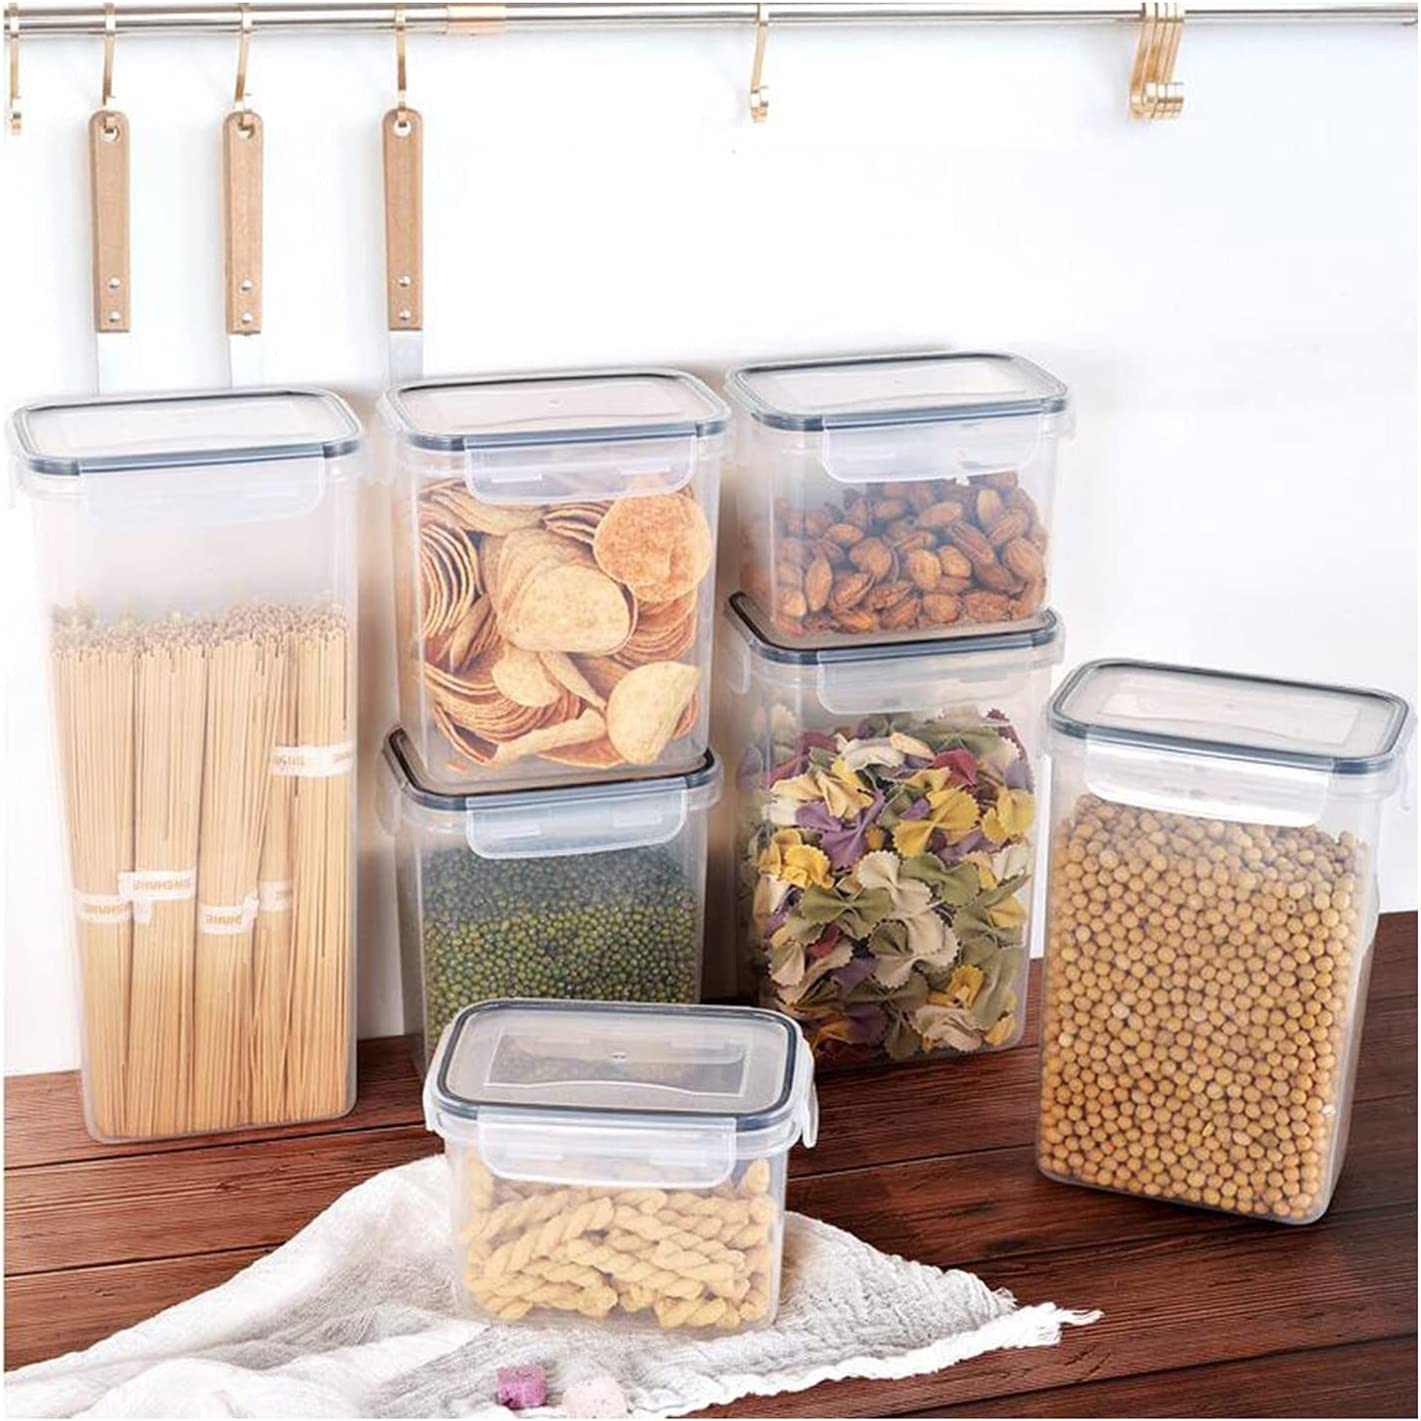 Genuine Free Shipping Airtight Food Storage Containers Set Beauty products Flour Kitchen for Canisters